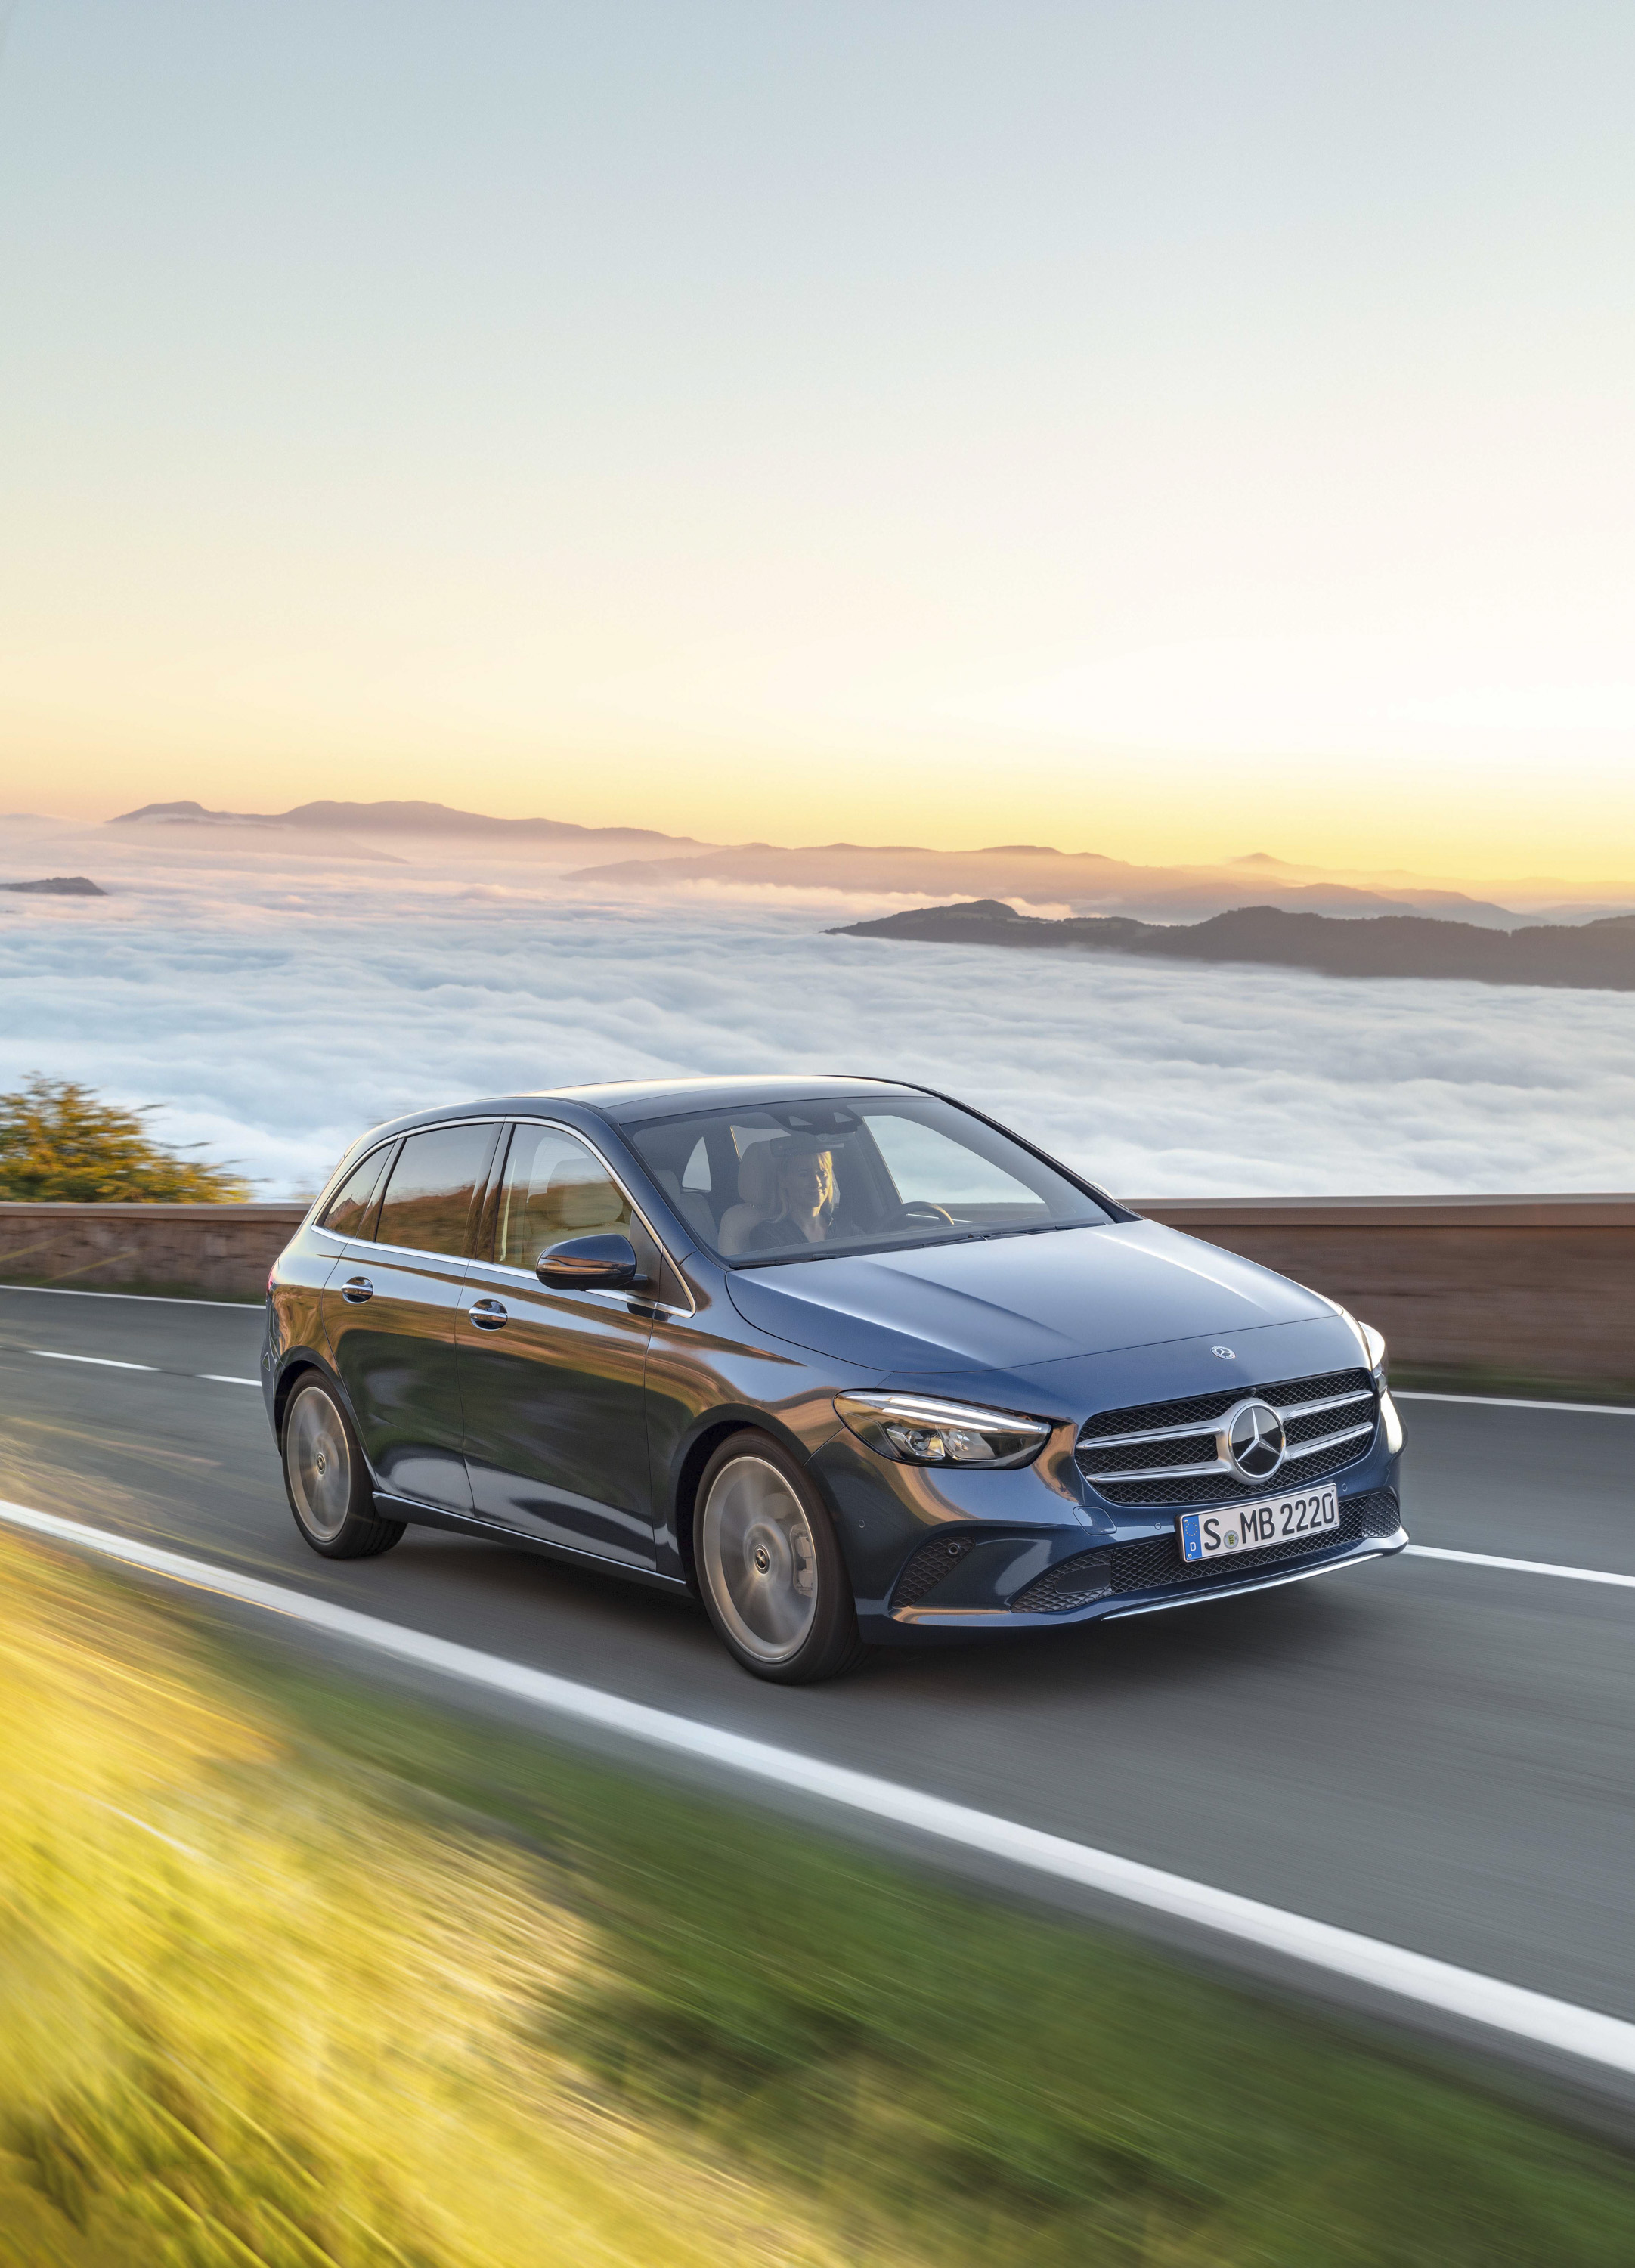 2019 Mercedes-Benz B-Class Pictures, Photos, Wallpapers ...